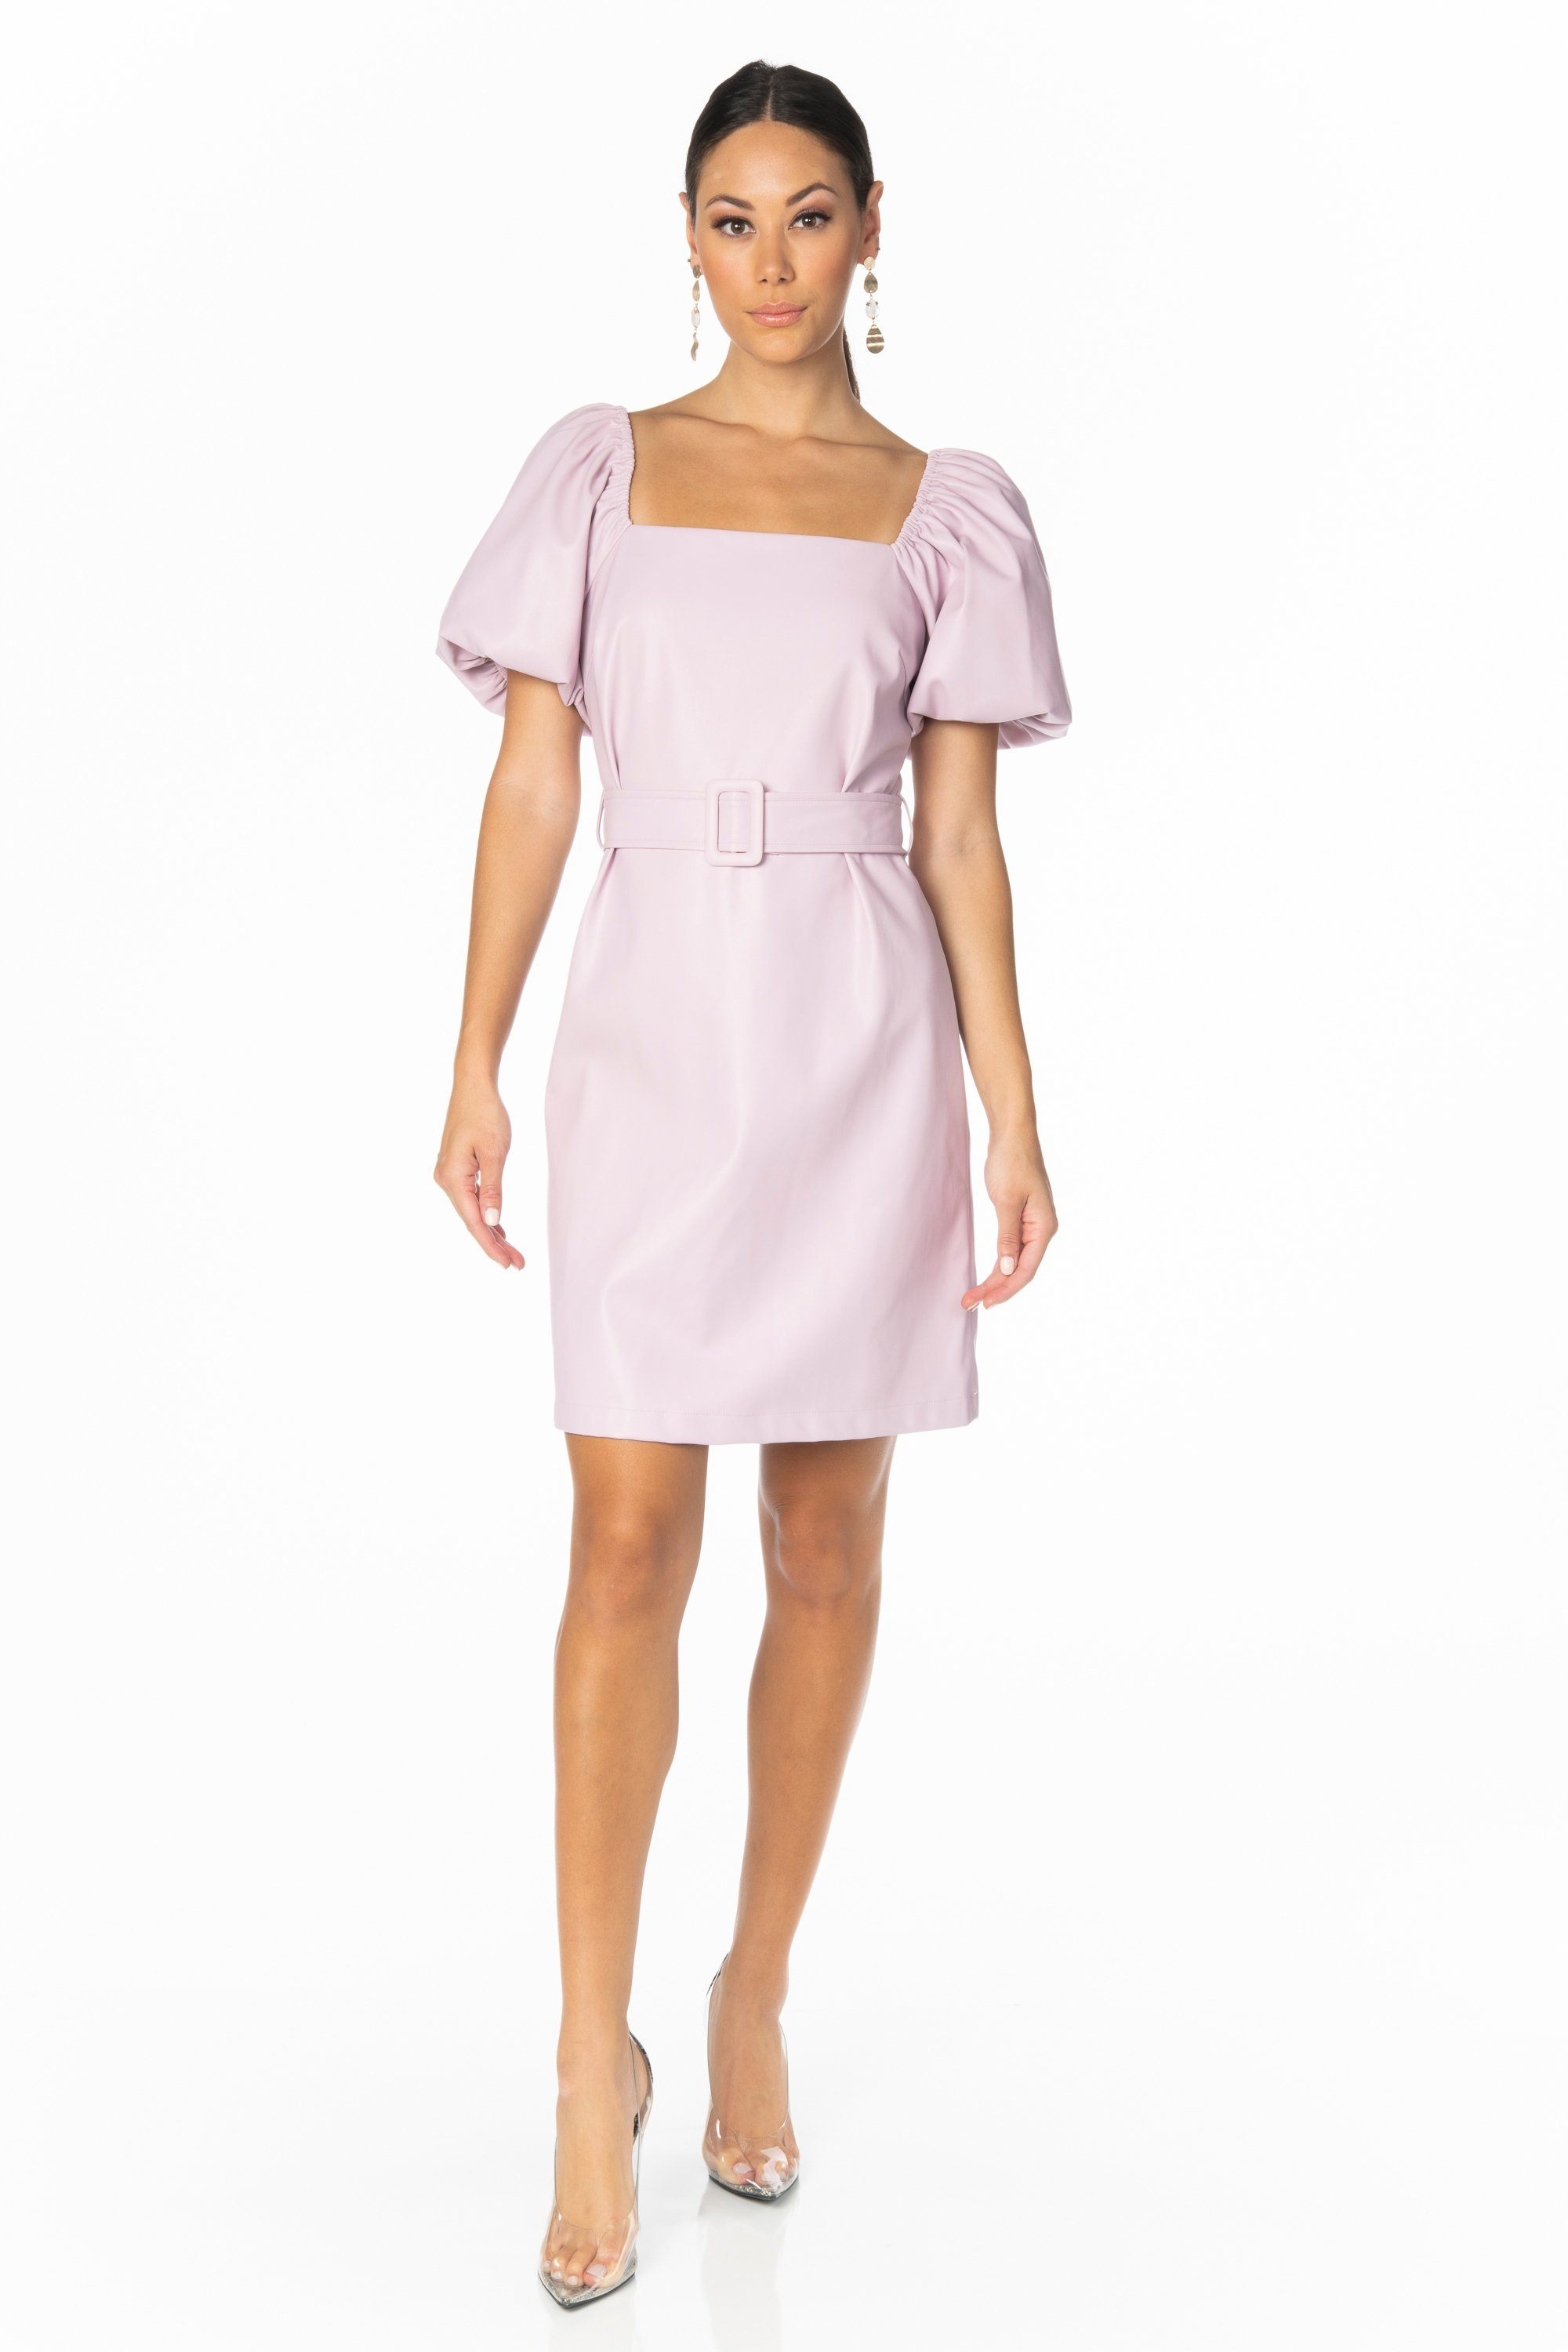 Mila Lavender Faux Leather Dress Dresses HYPEACH BOUTIQUE